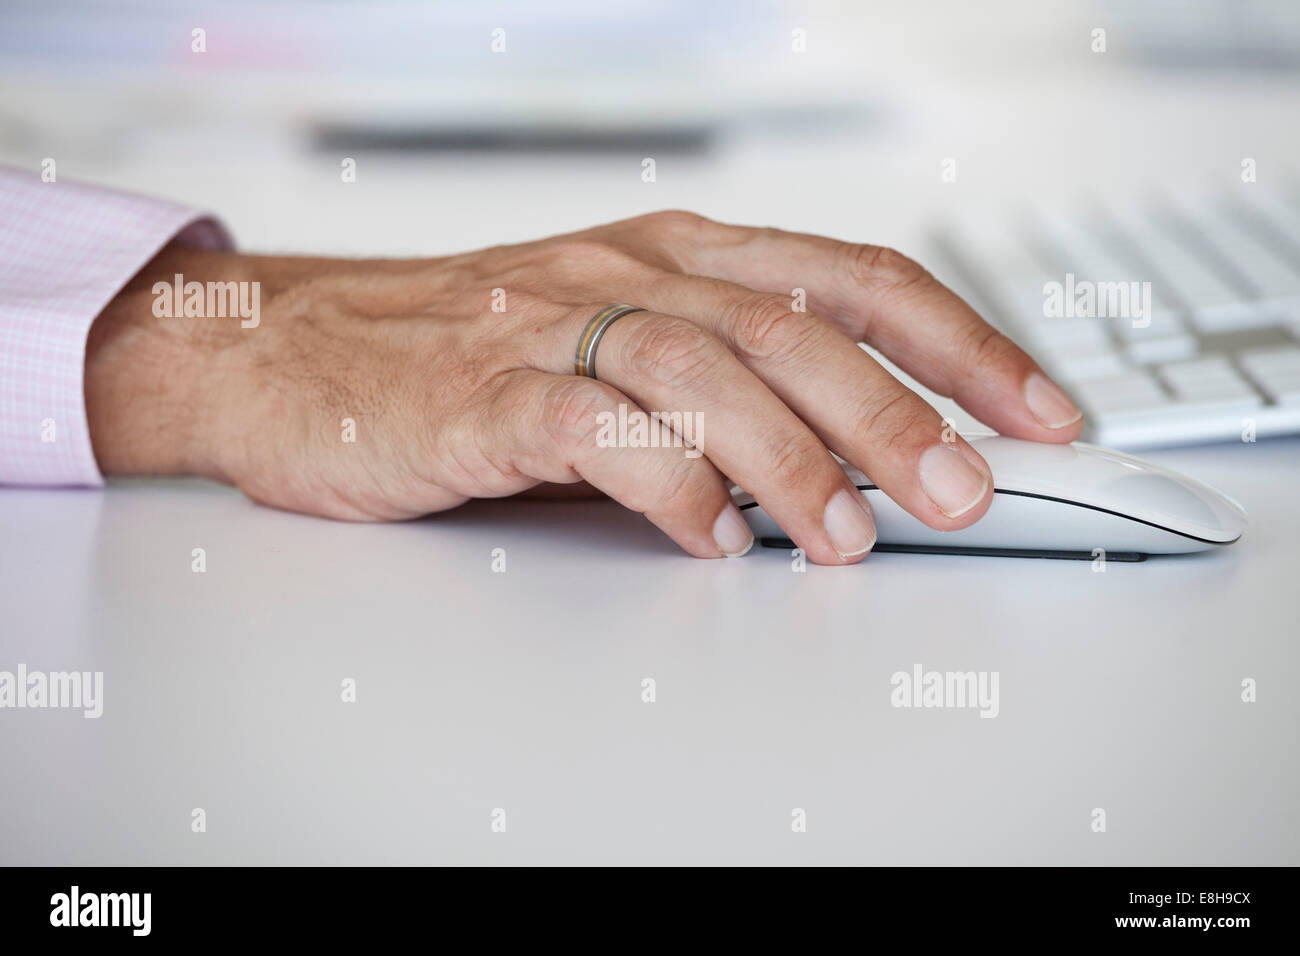 Man's hand on a computer mouse - Stock Image